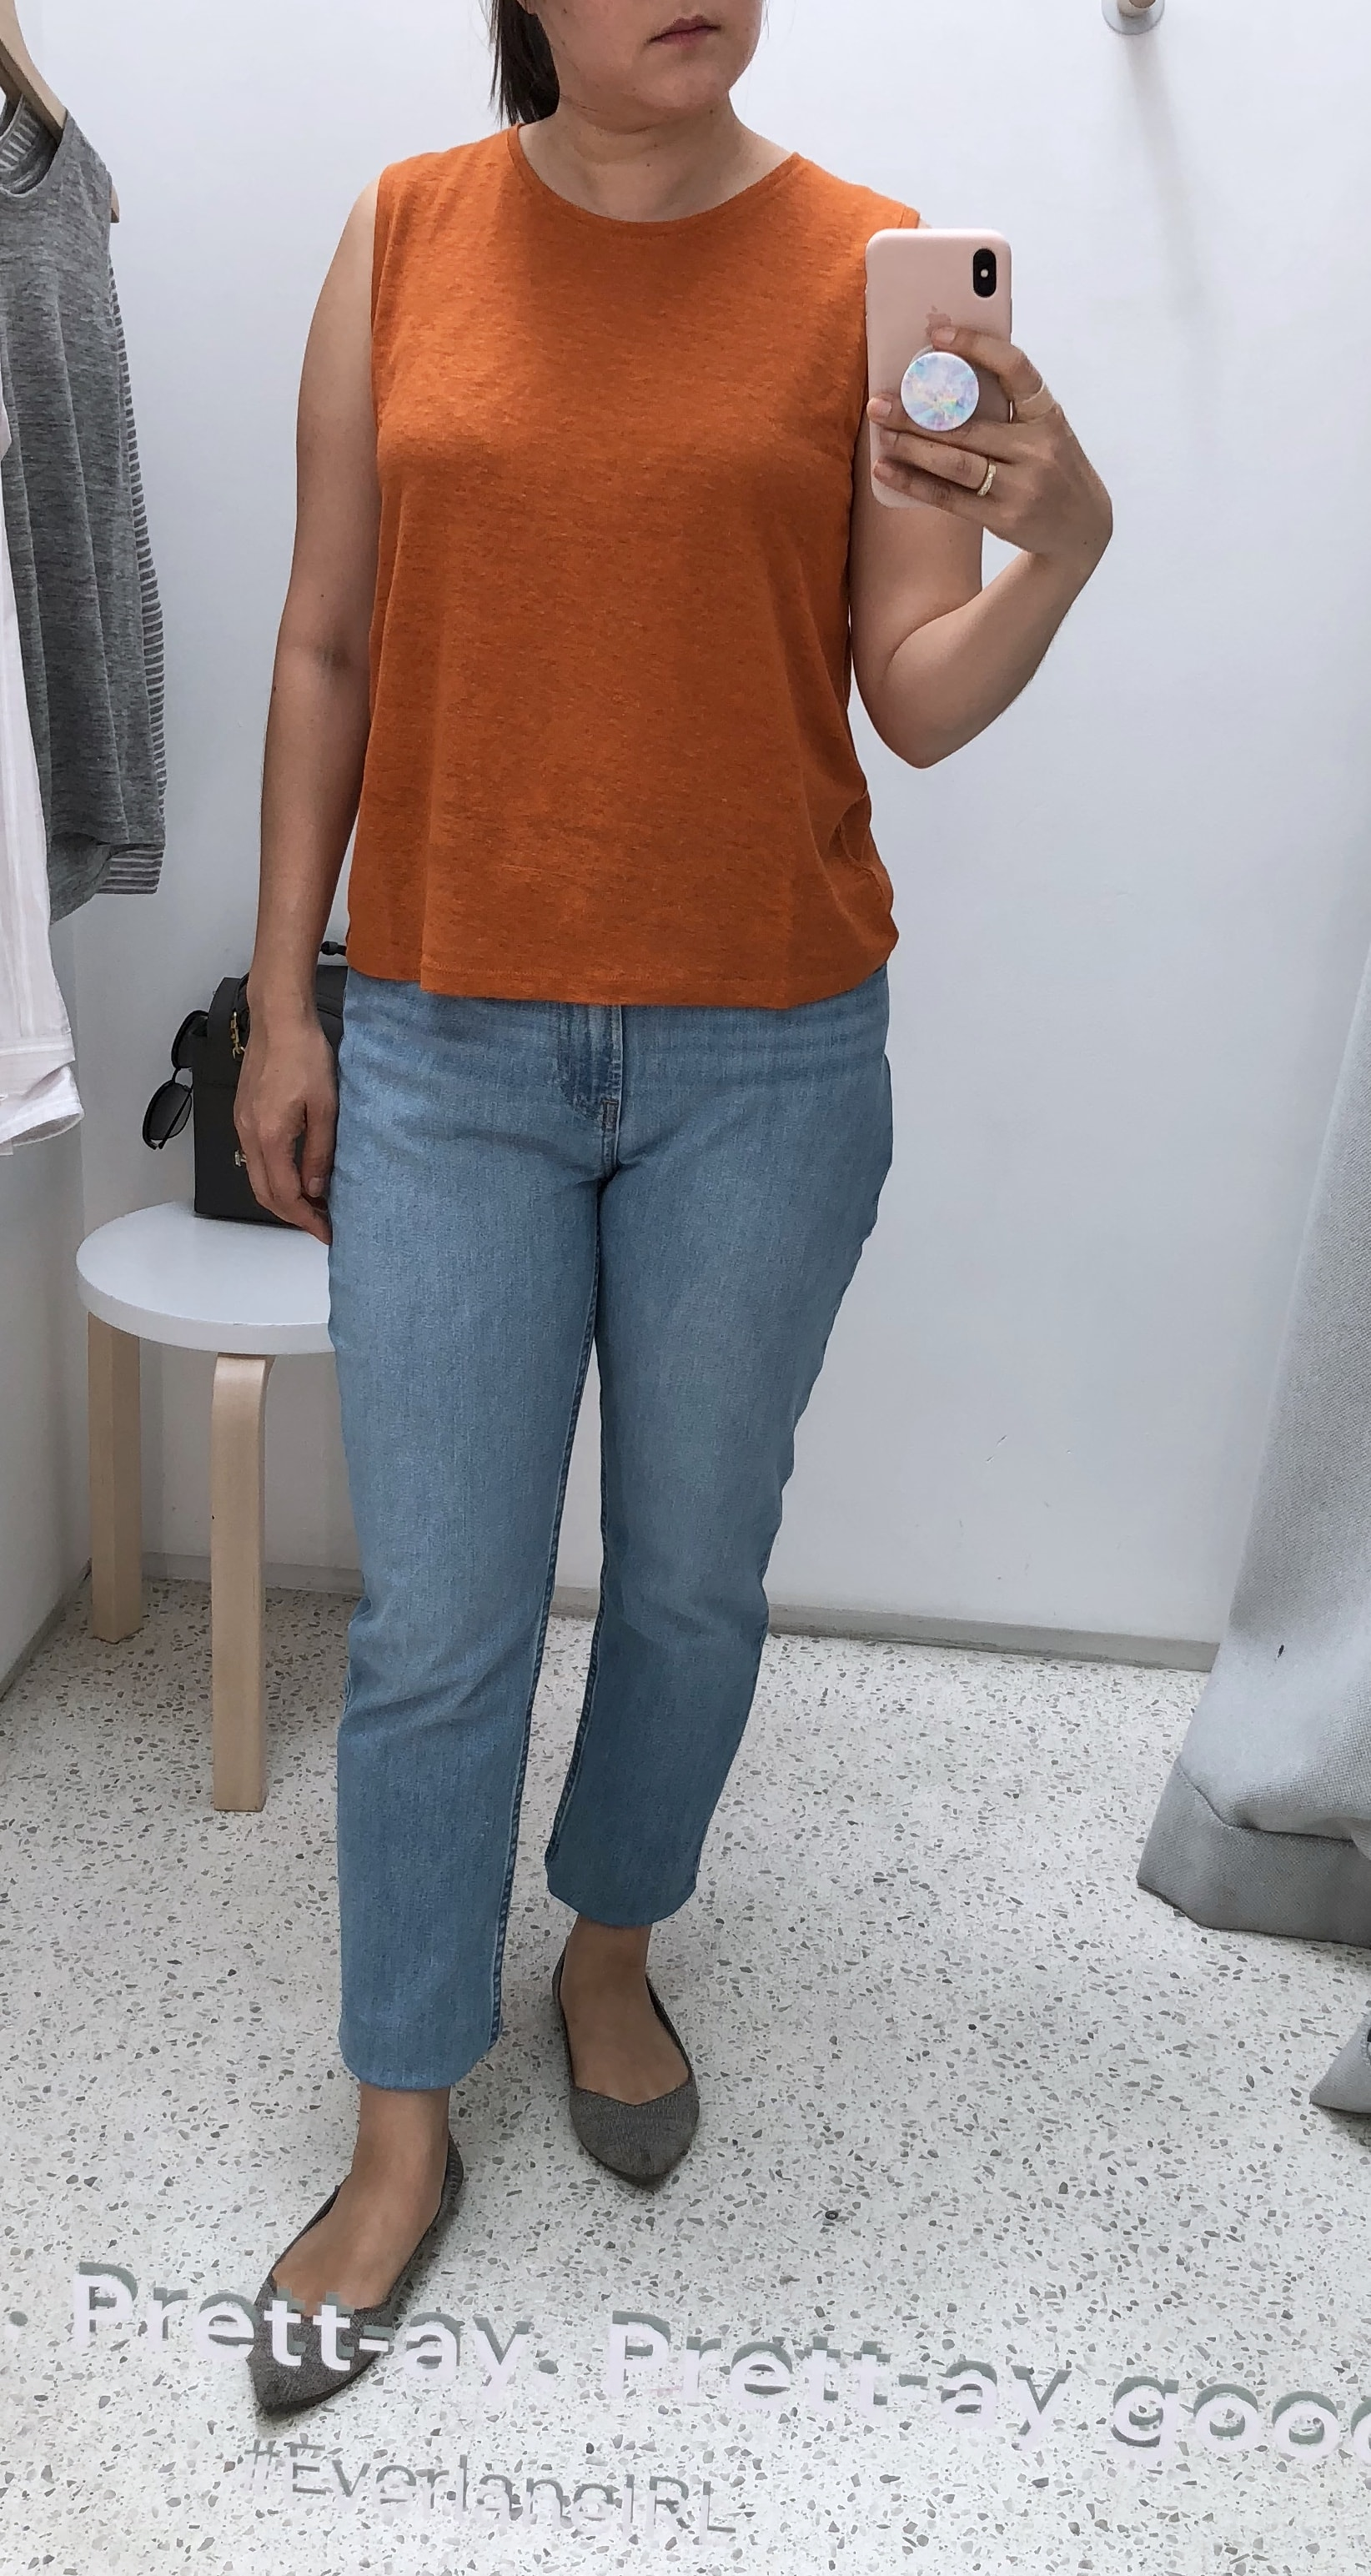 Everlane review cheeky jean